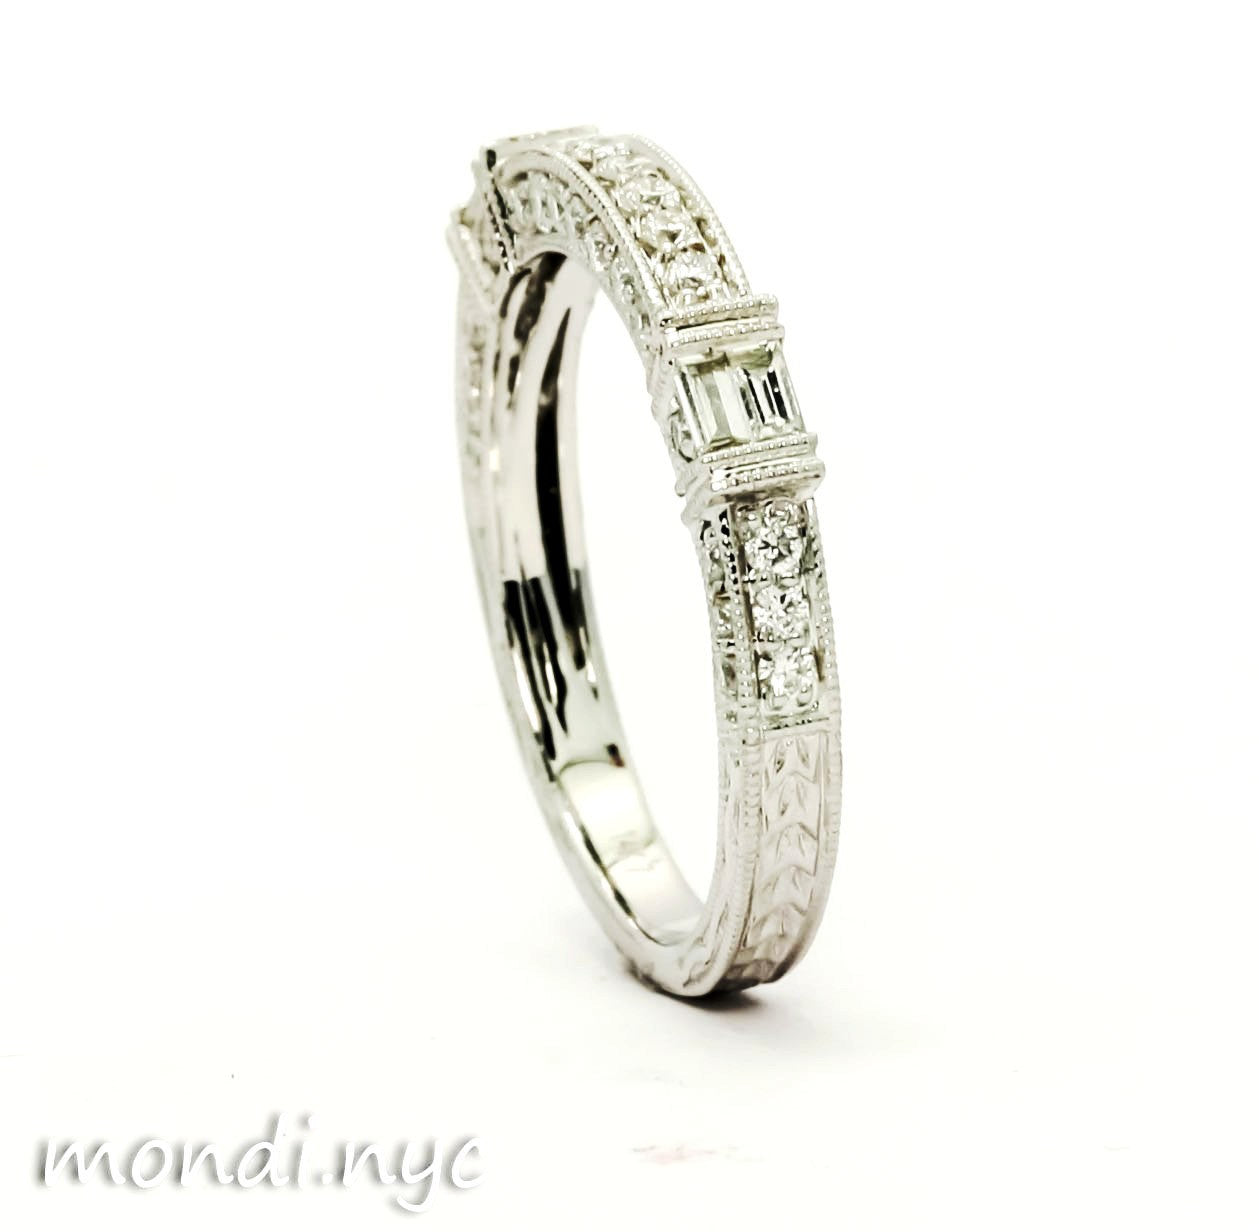 Art Deco Diamond Wedding Band, Matching Engagement Ring Available - 73109WB